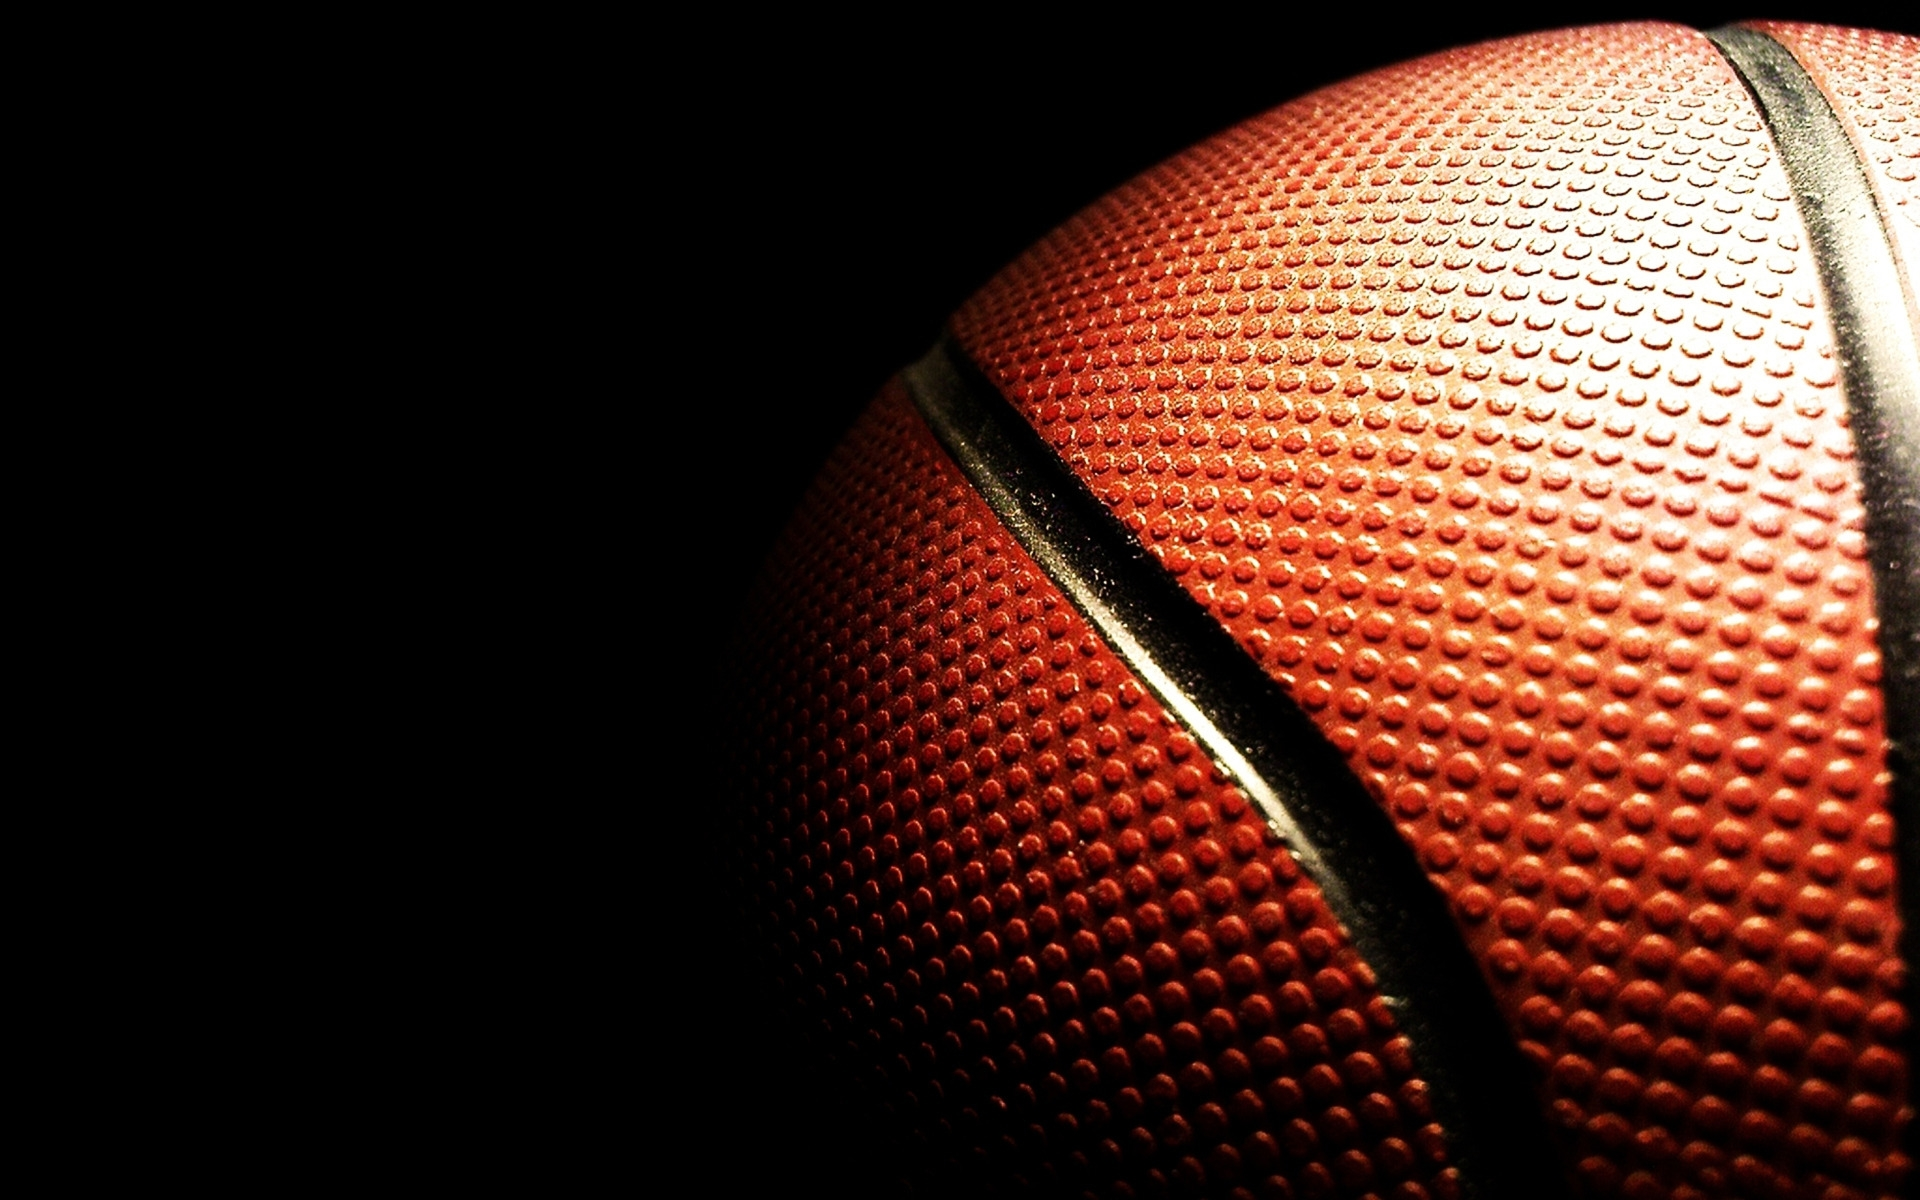 Basketball for 1920 x 1200 widescreen resolution